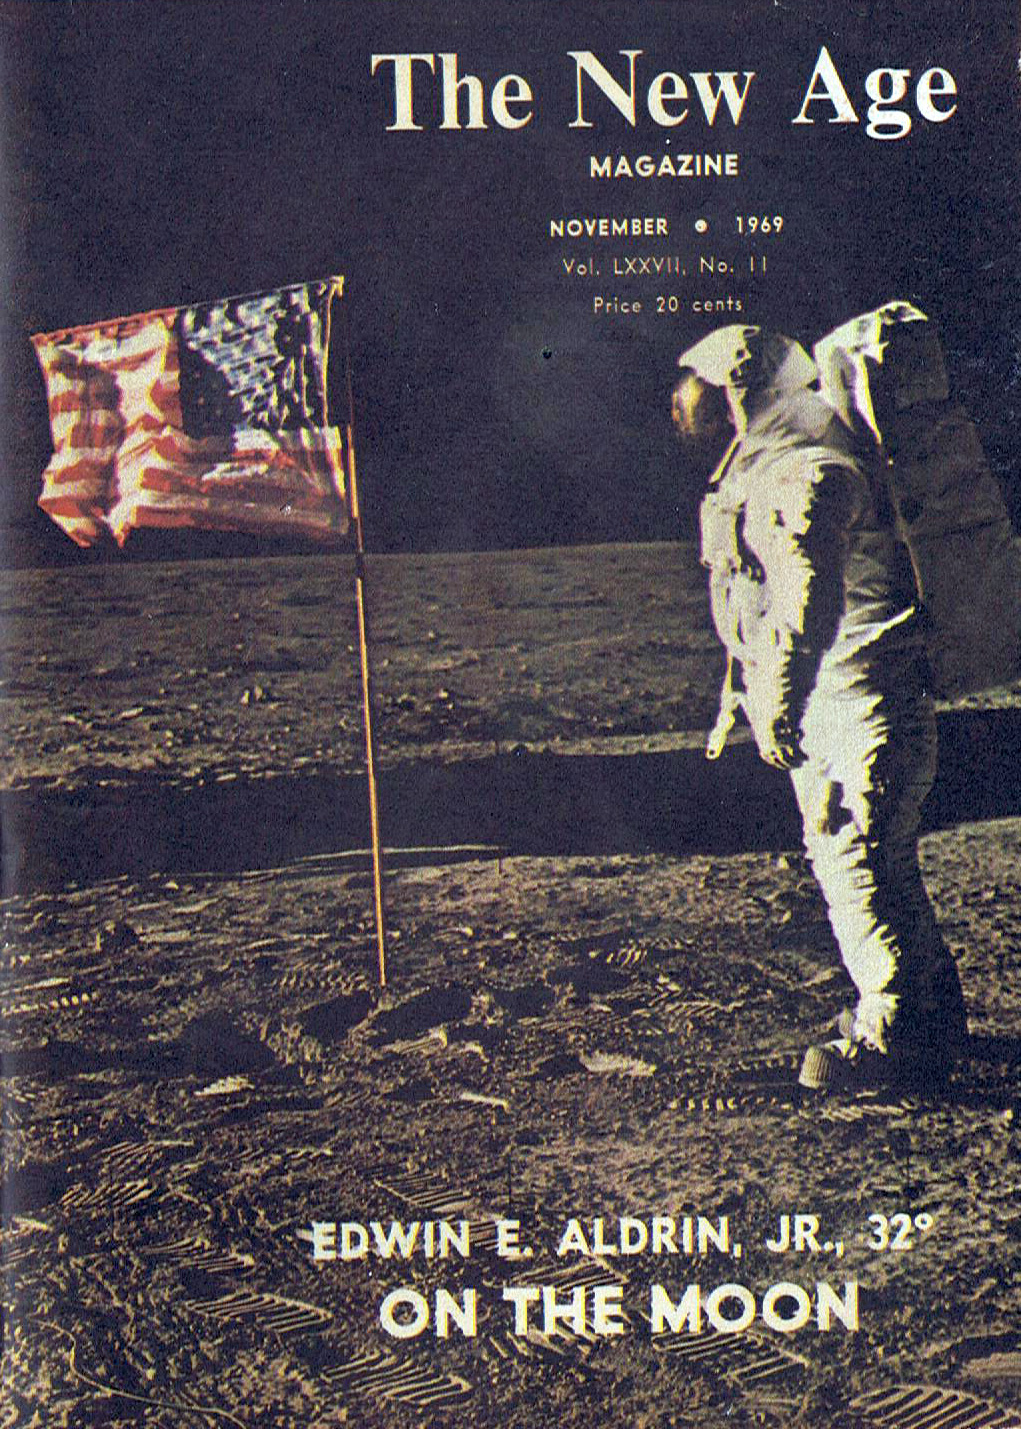 The New Age novembre 1969 Buzz Aldrin massone 32° grado